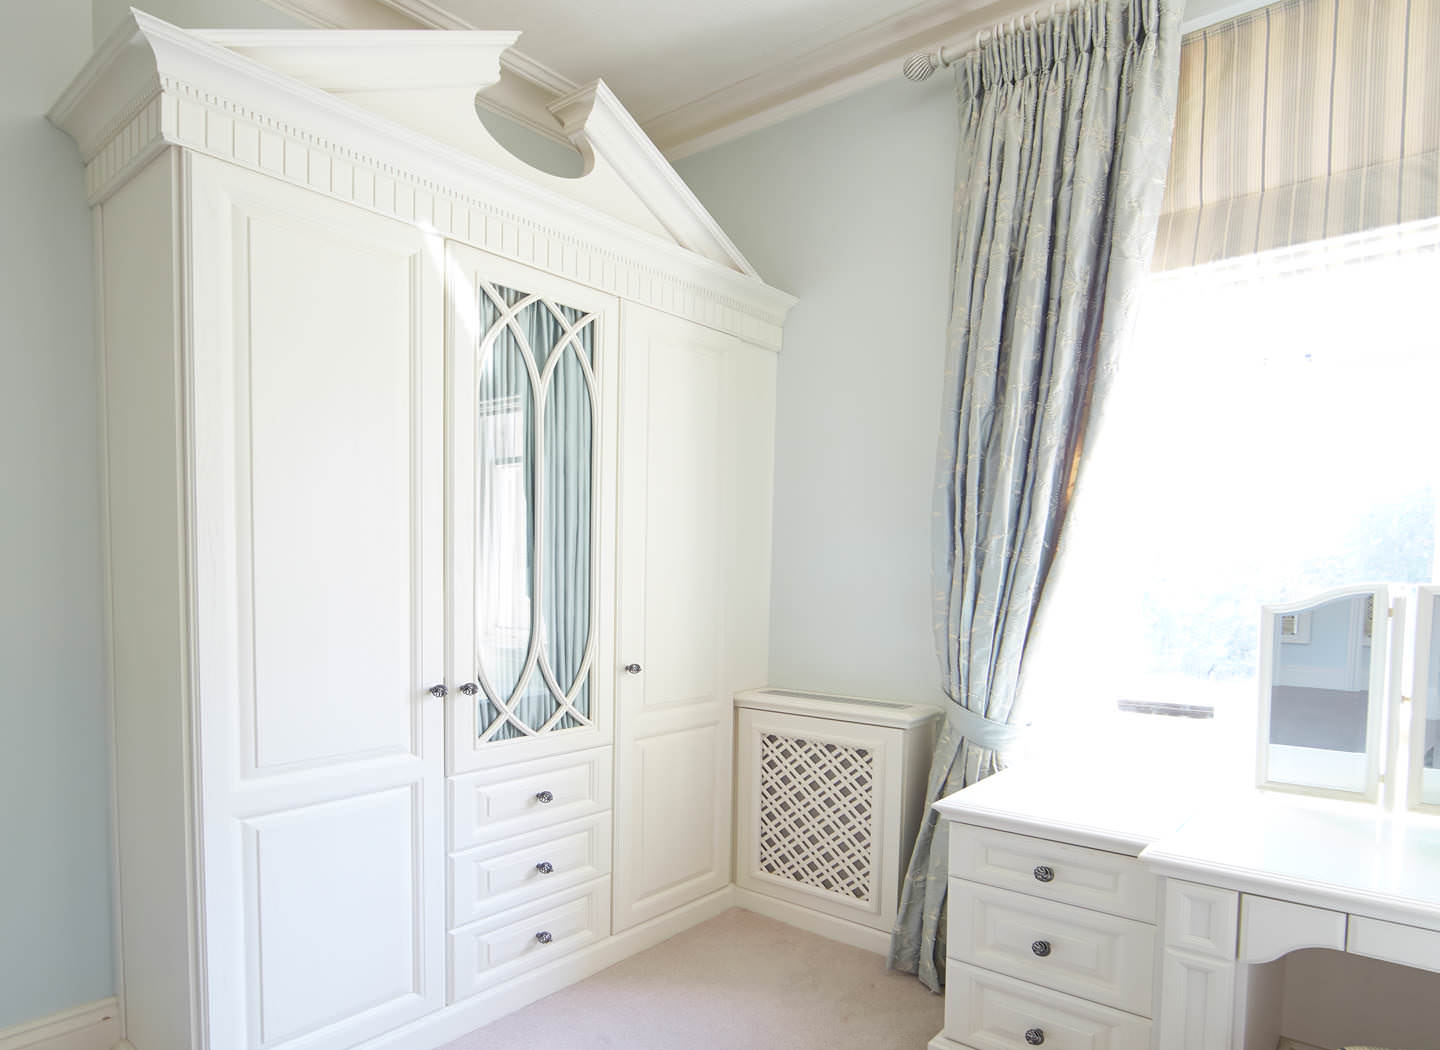 Case study showing wardrobe, desk and radiator cover in bedroom